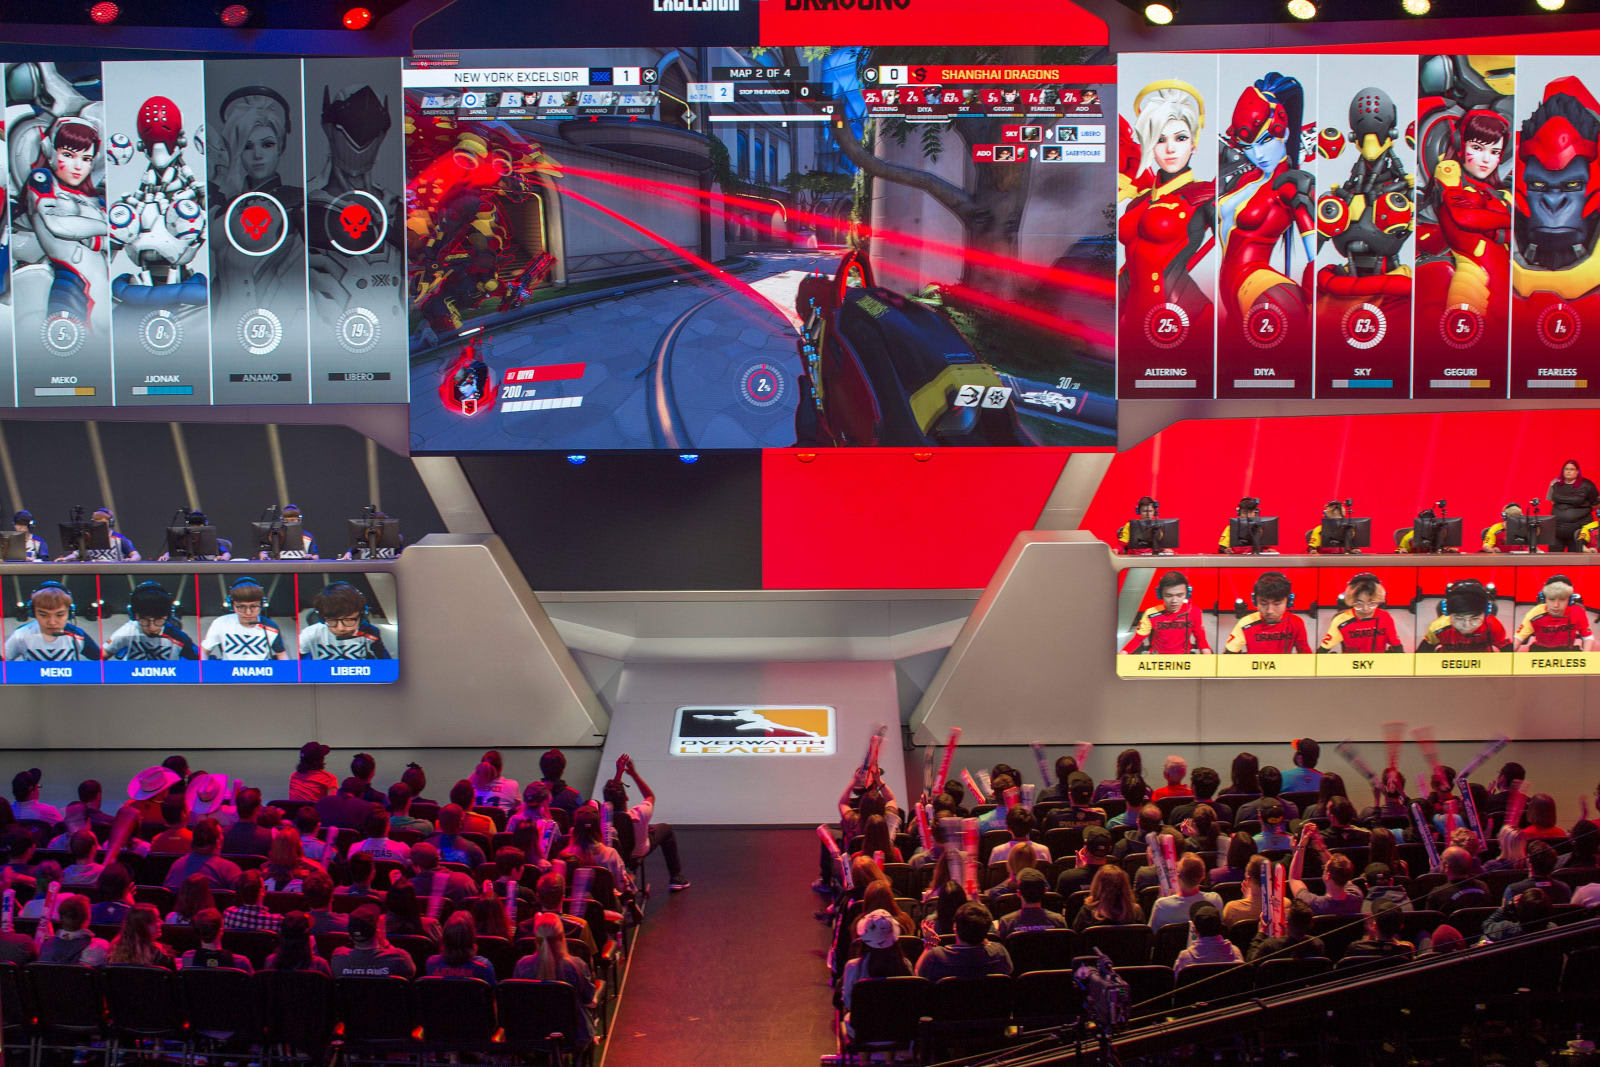 Overwatch League lets fans choose how to watch the action for $15